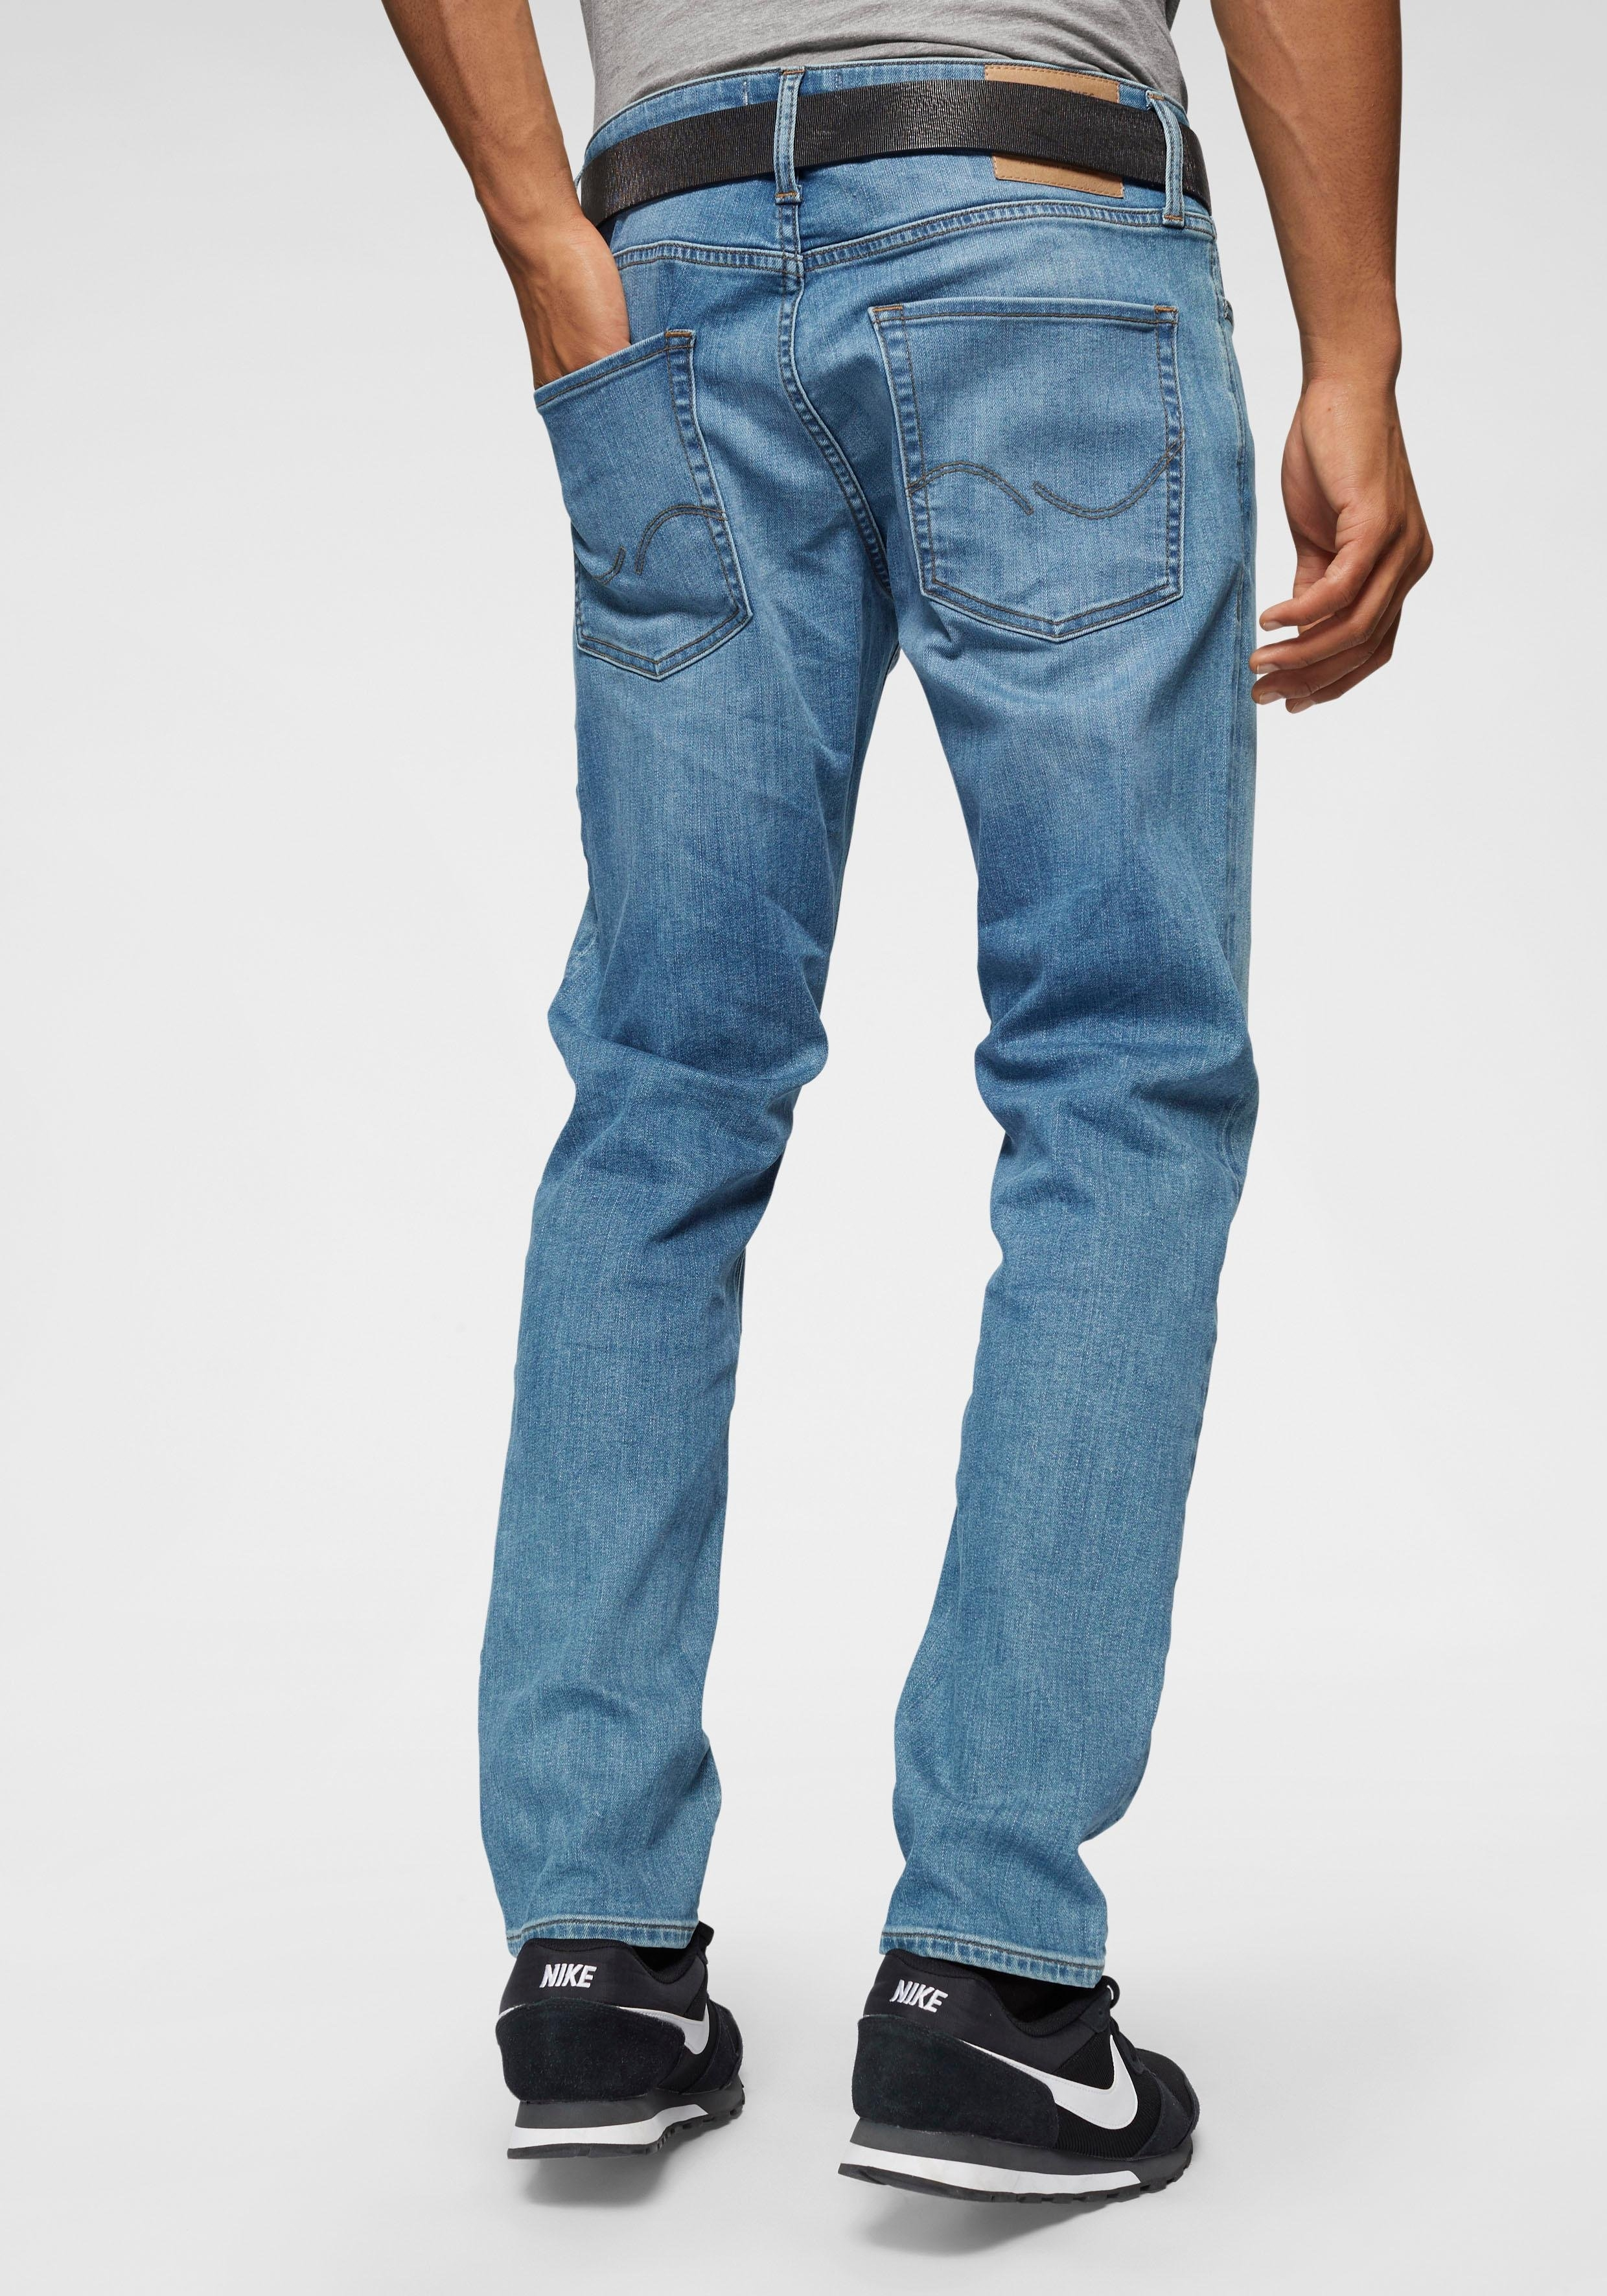 aa57cd879aacca Afbeeldingsbron  Jack   Jones comfort fit jeans »Mike«